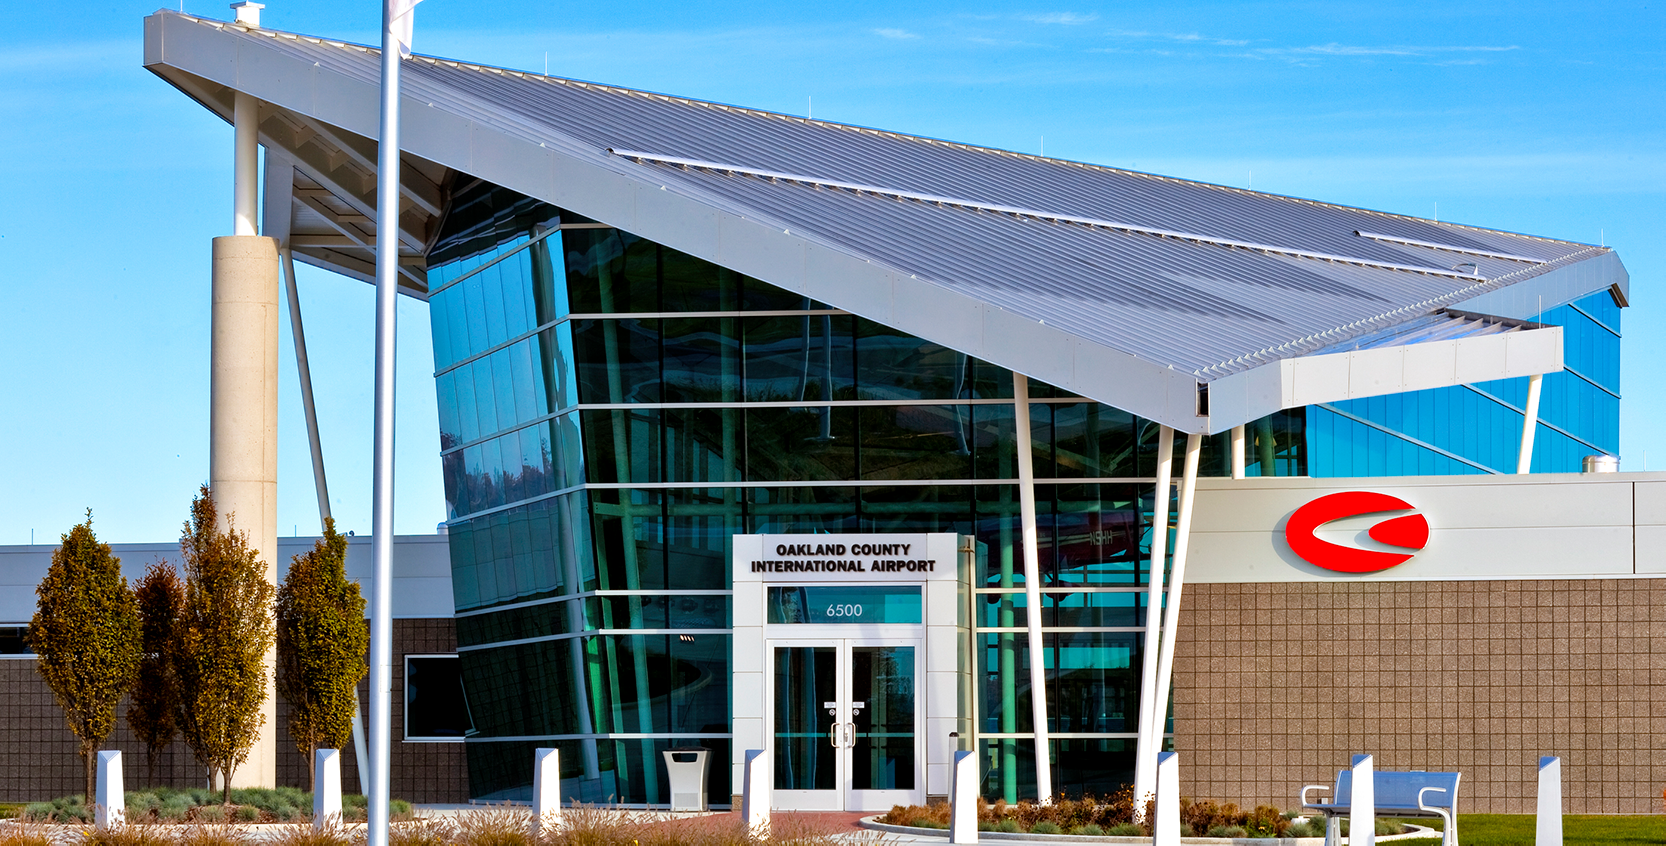 Oakland County International Airport New Terminal and Offices 1665x845